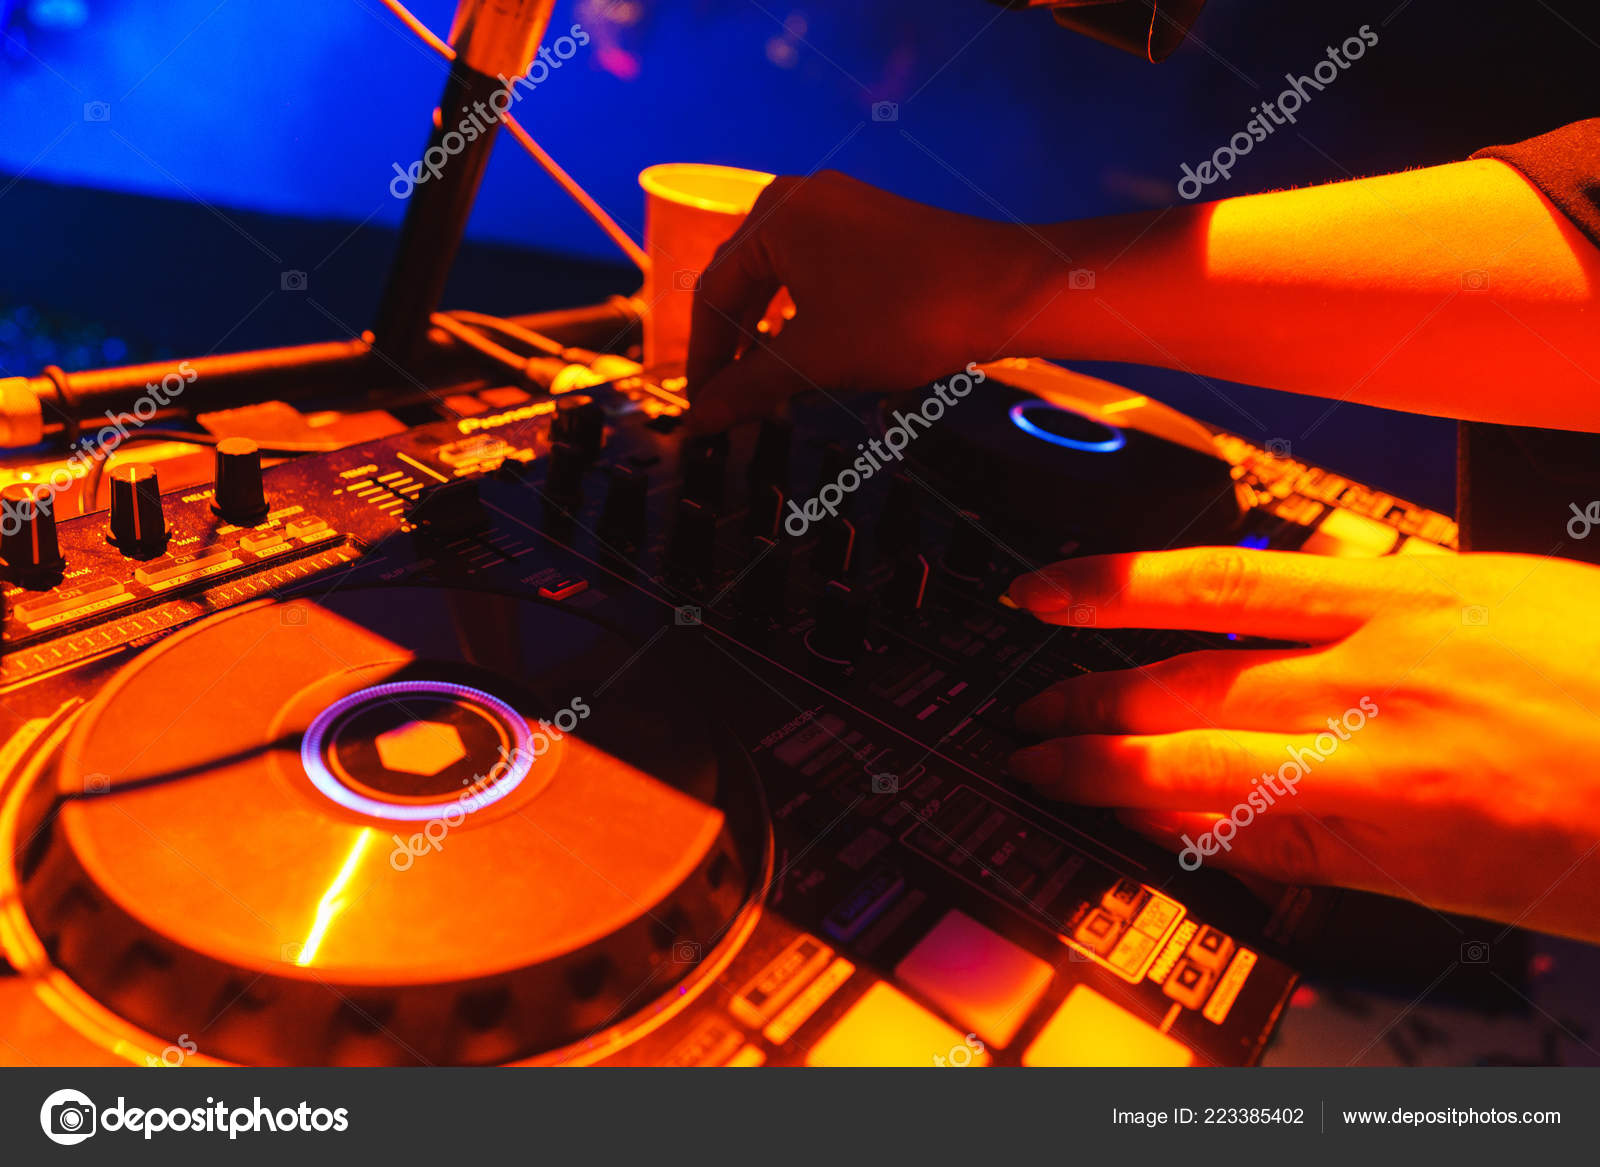 dj hands on a special dj equipment during a performance in a